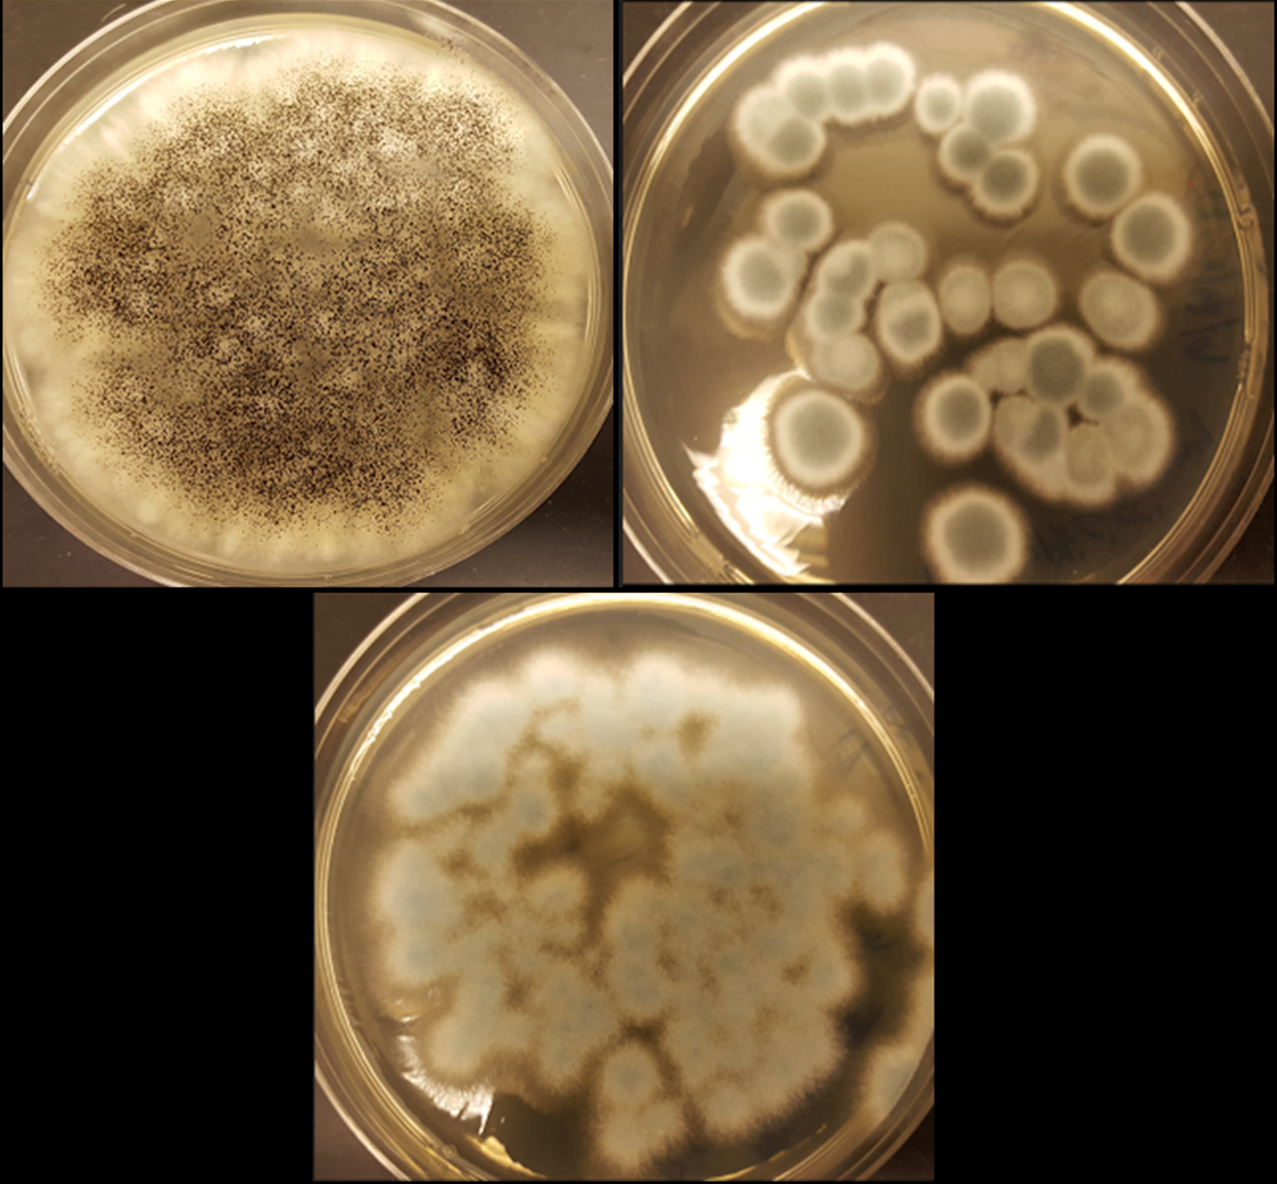 The fungi Aspergillus niger (top left), Penicillium simplicissimum (top right) and Penicillium chrysogenum (bottom) can recycle cobalt and lithium from rechargeable batteries. Credit: Aldo Lobos